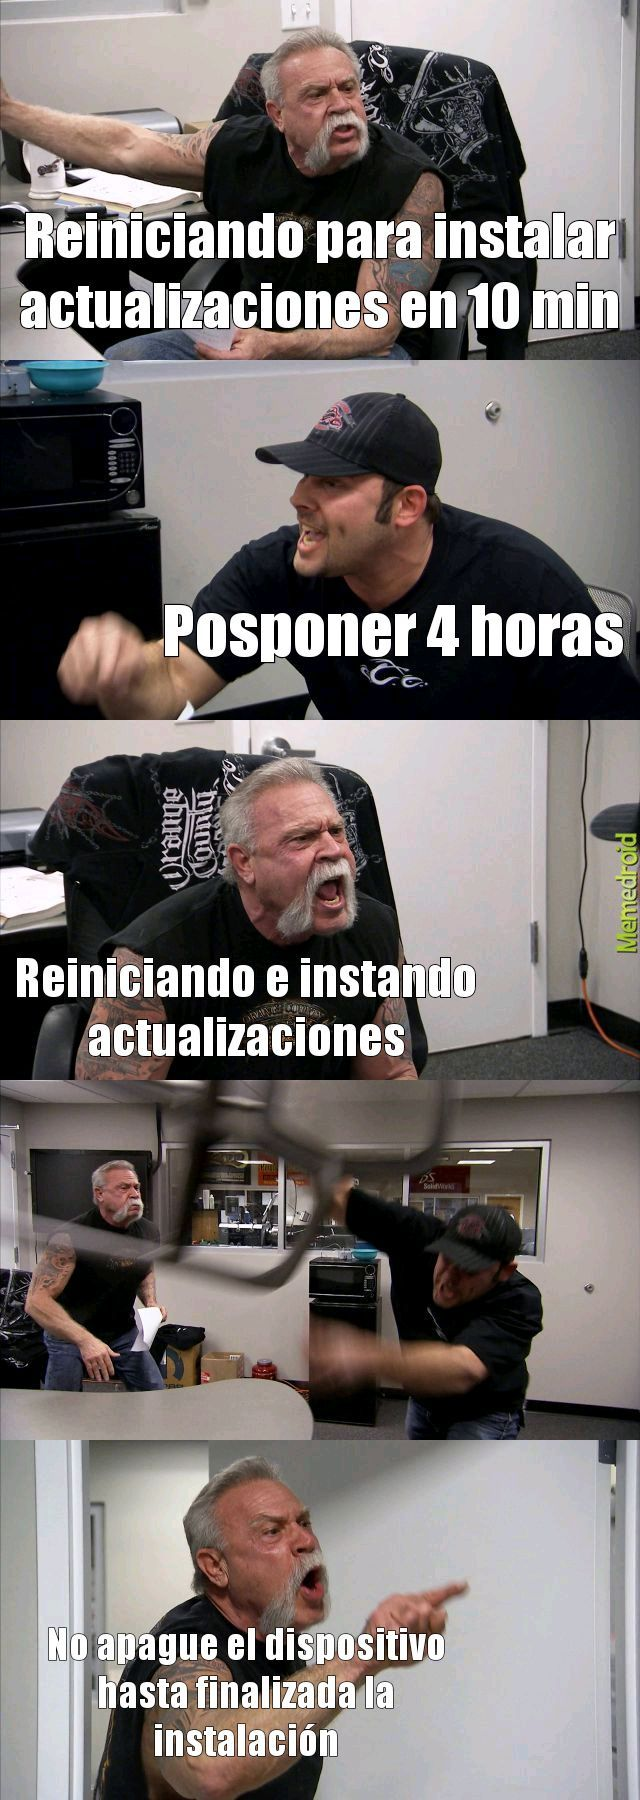 Pto windows - meme